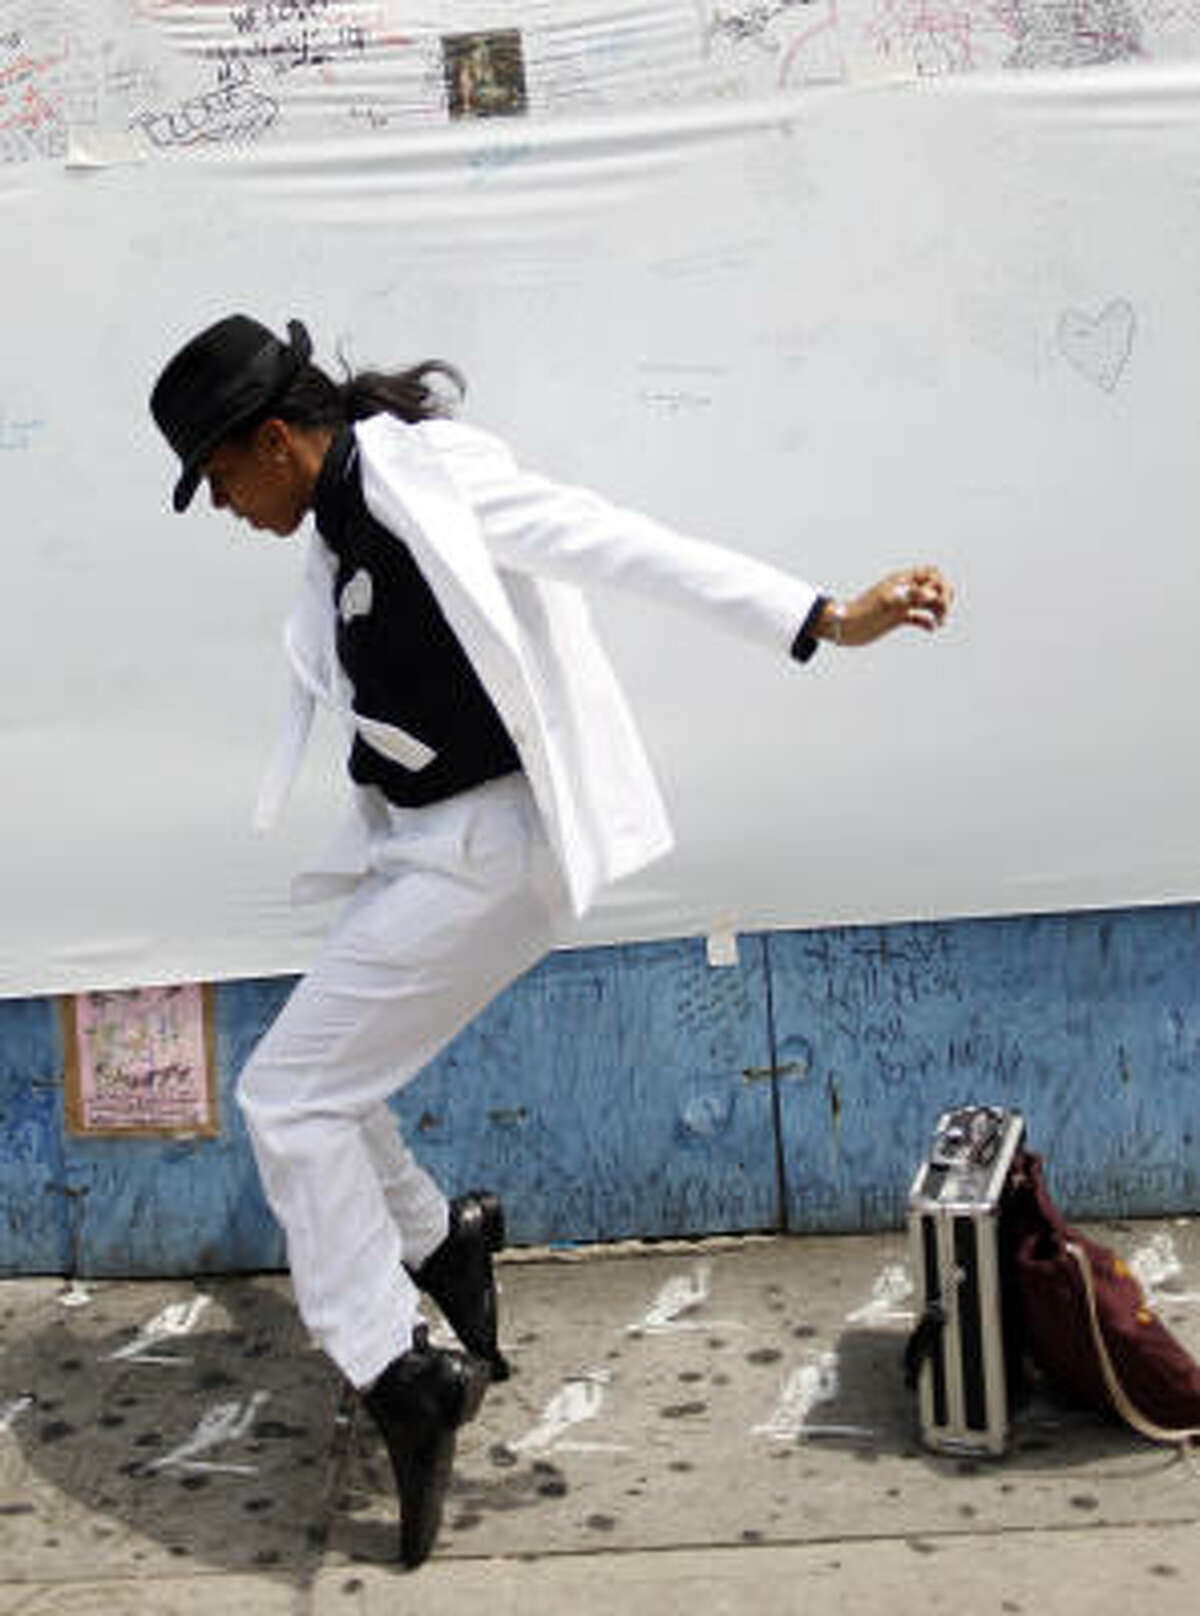 Moses Harper shows off her dance moves in front of banner in tribute to Michael Jackson in front of the Apollo Theatre in the Harlem neighborhood of New York today.